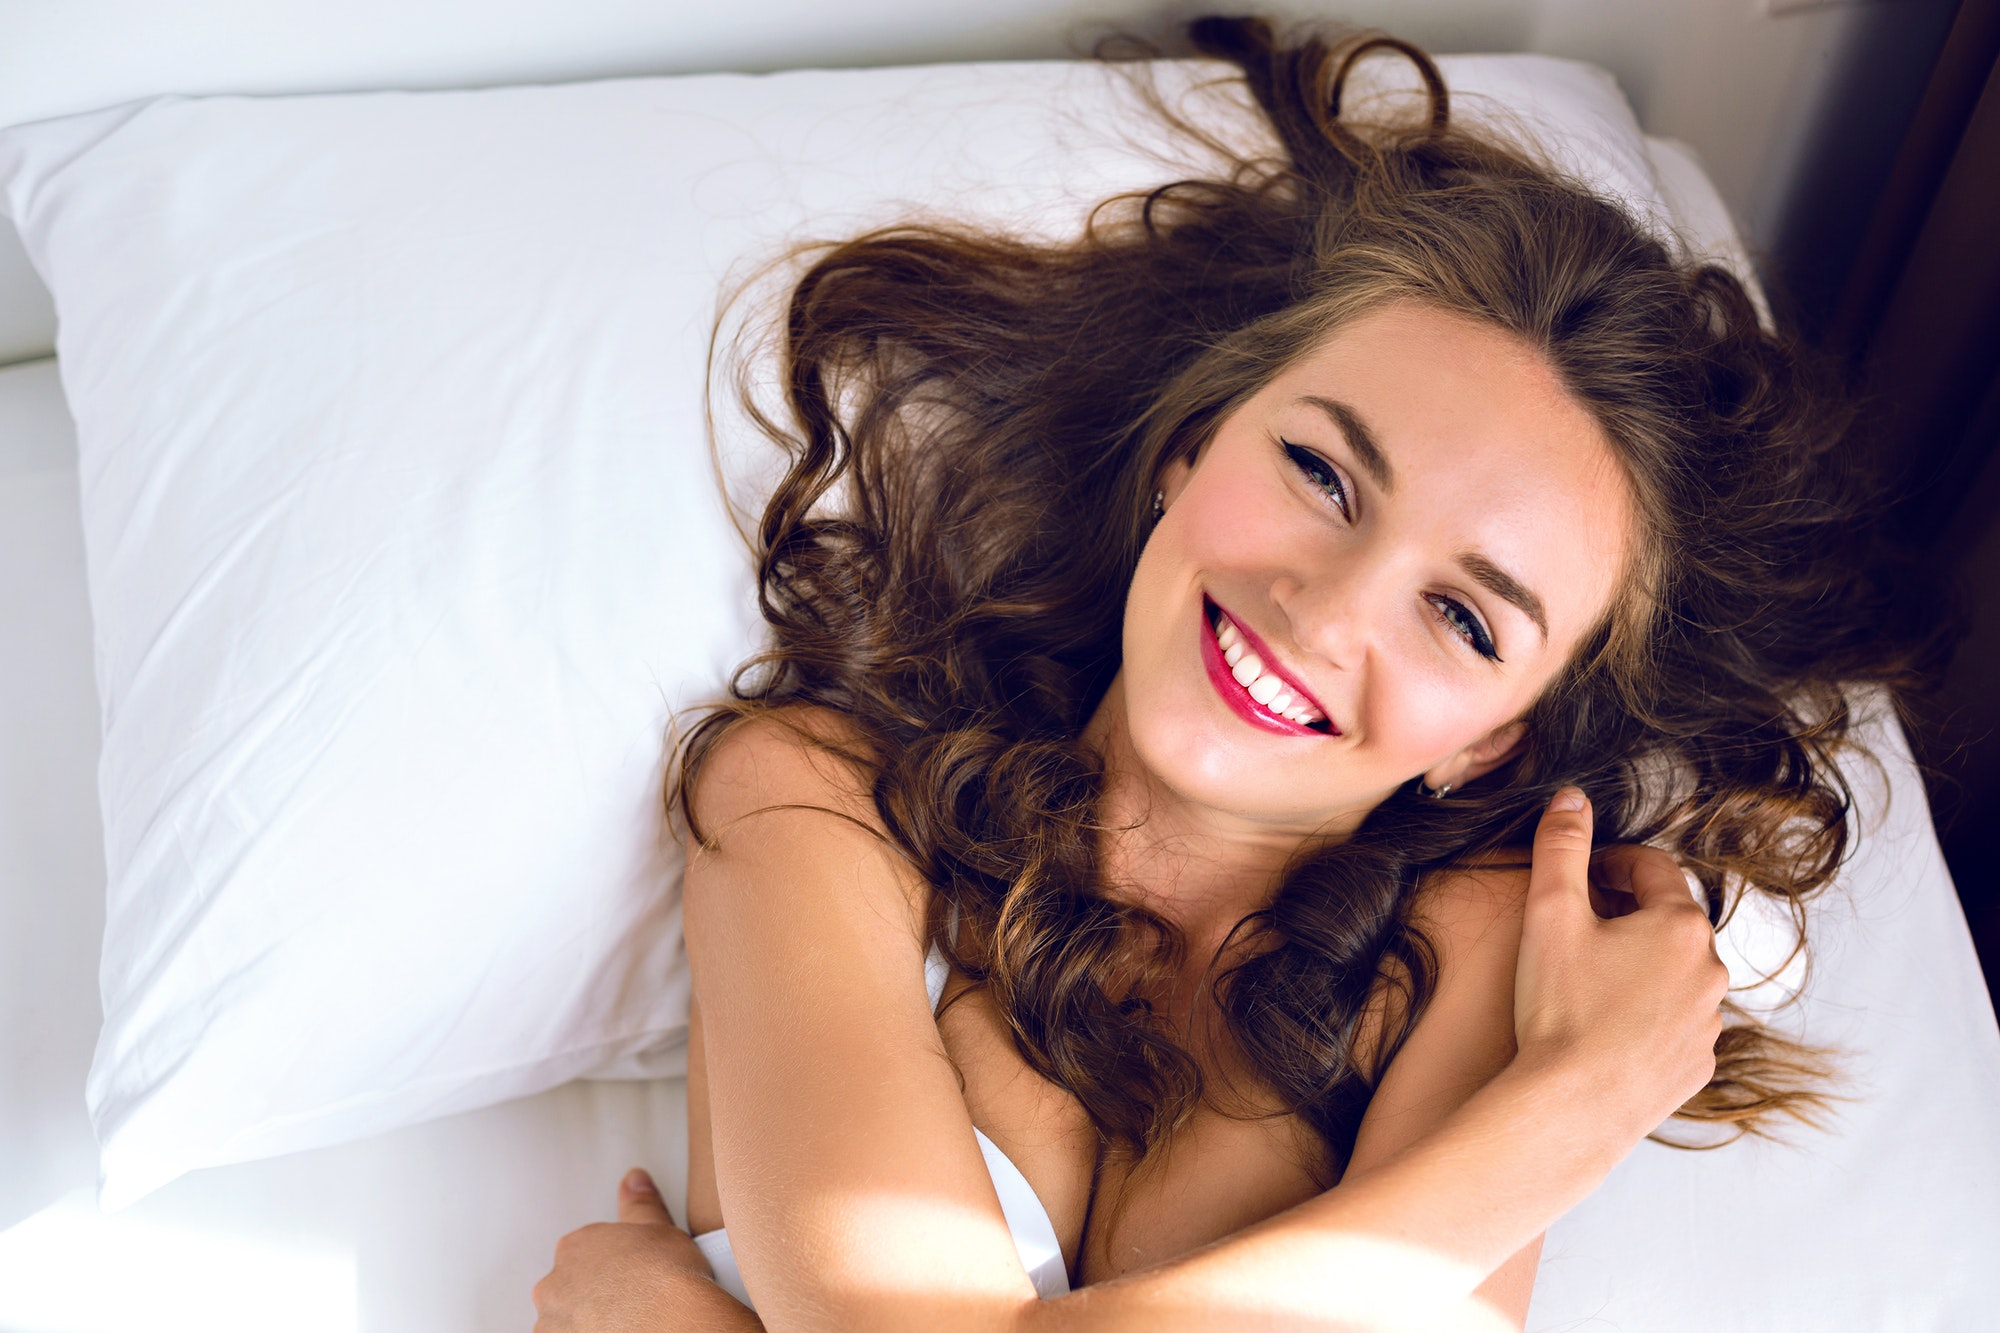 Morning sensual sexy portrait of stunning young woman